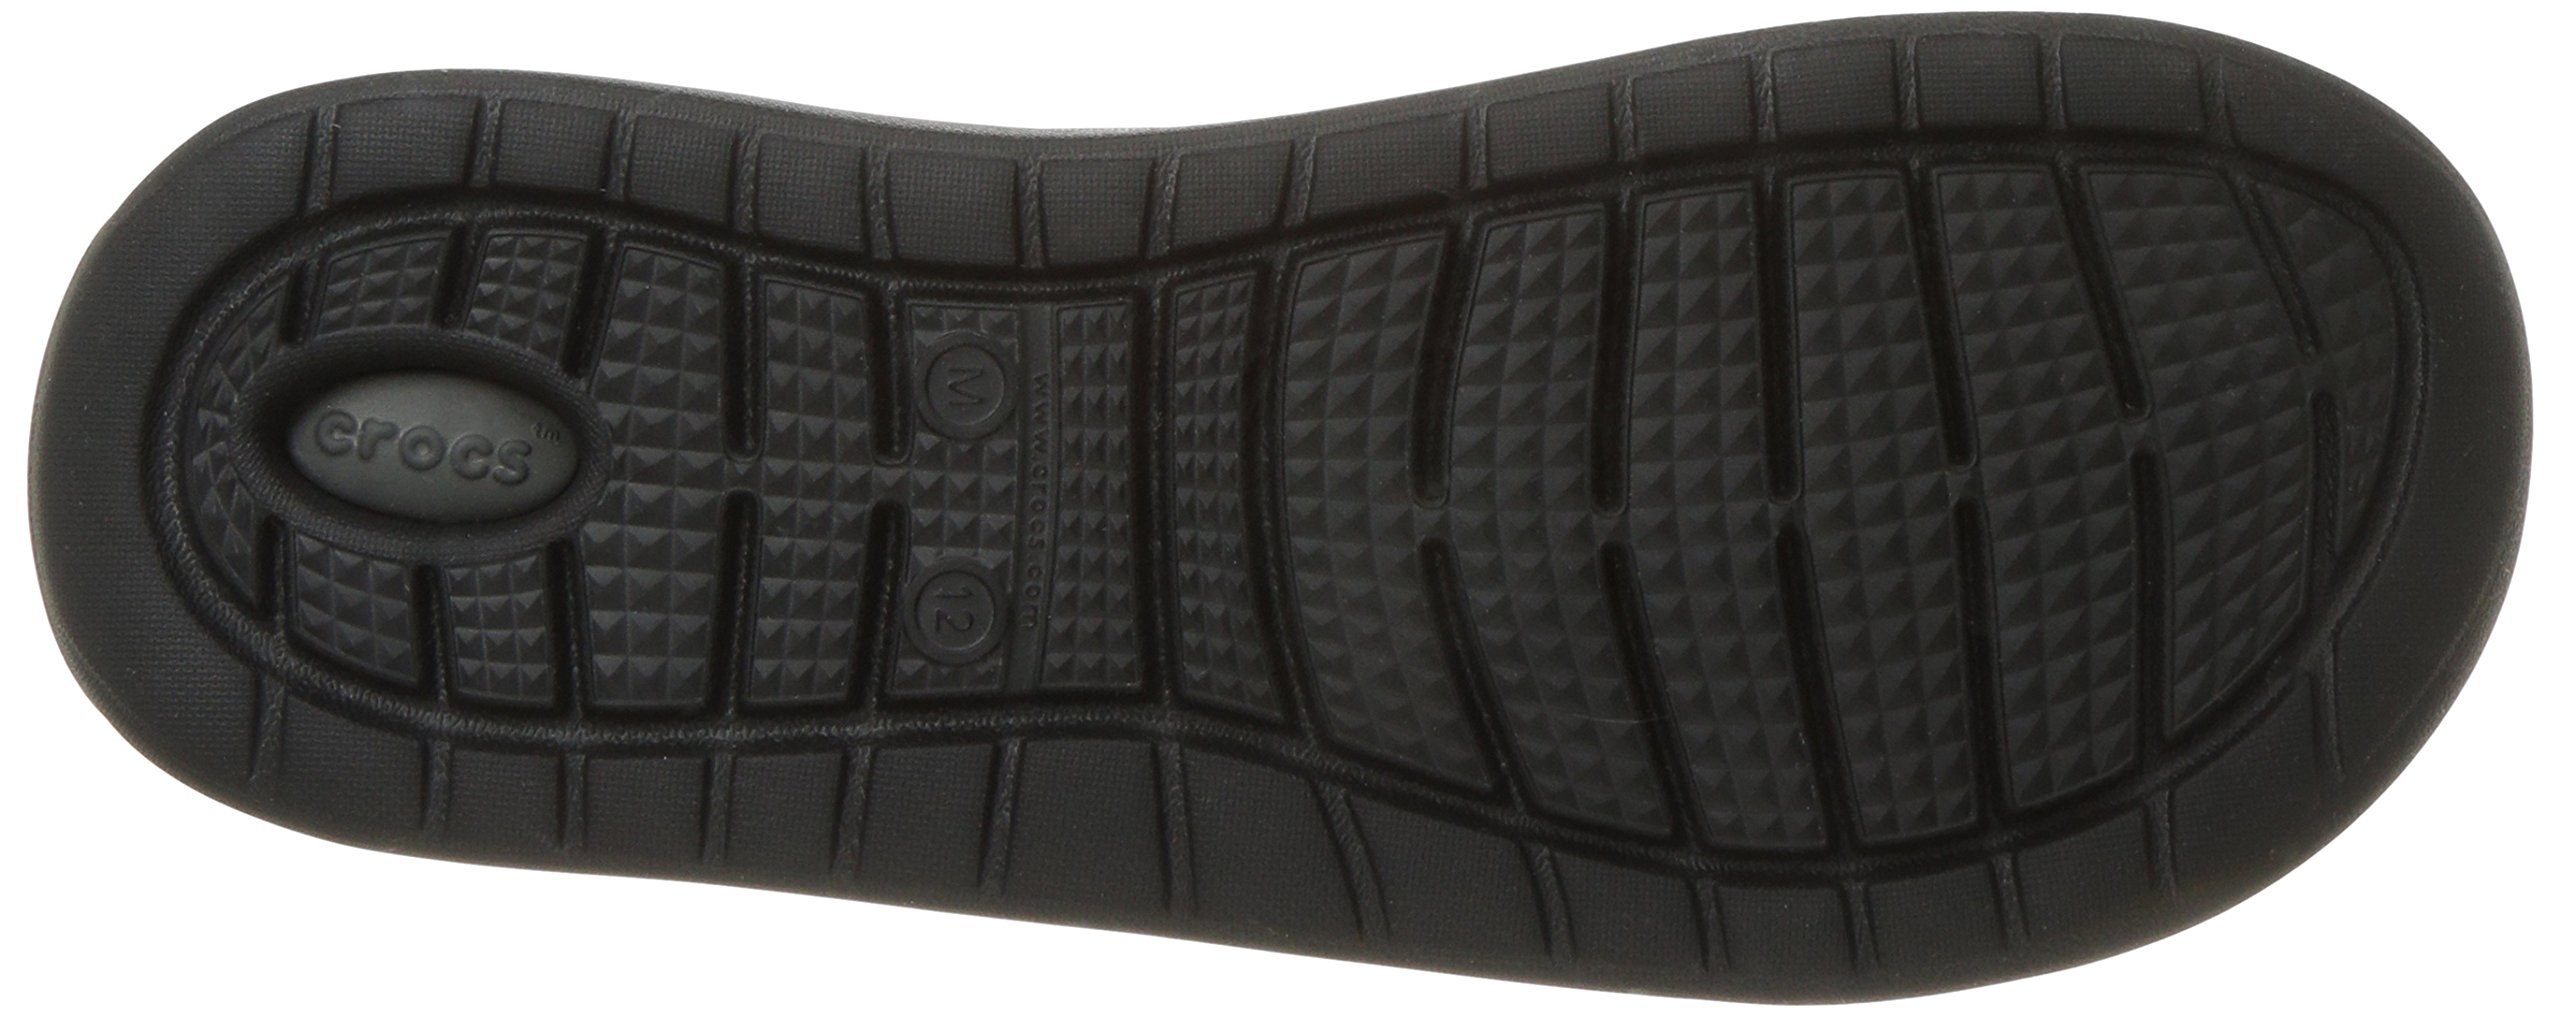 Crocs Unisex-Adults Literide Slide Sandal, Black/Slate Grey, 8 US Men/10 US Women by Crocs (Image #3)